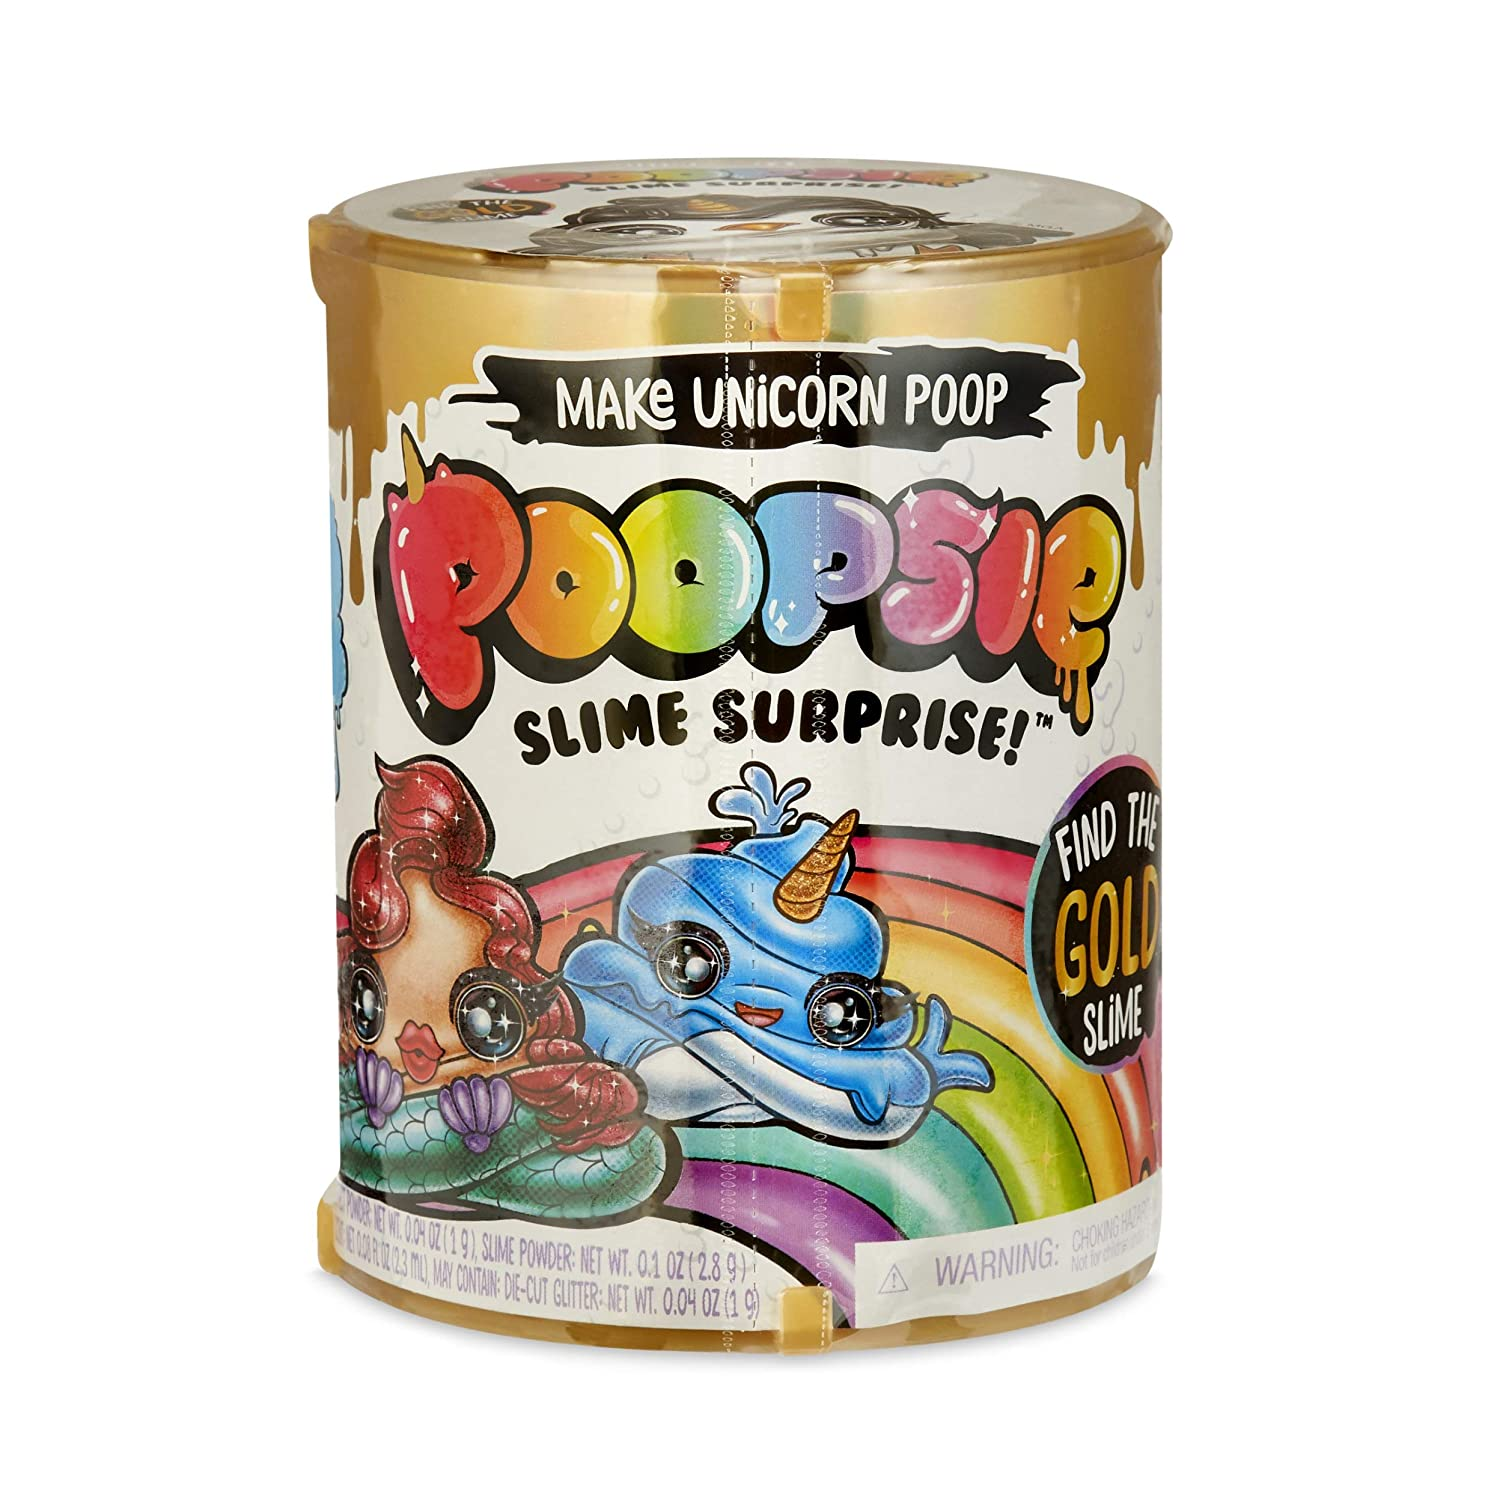 Multicolor Poopsie Slime Surprise Poop Pack Drop 2 Make Magical Unicorn Poop